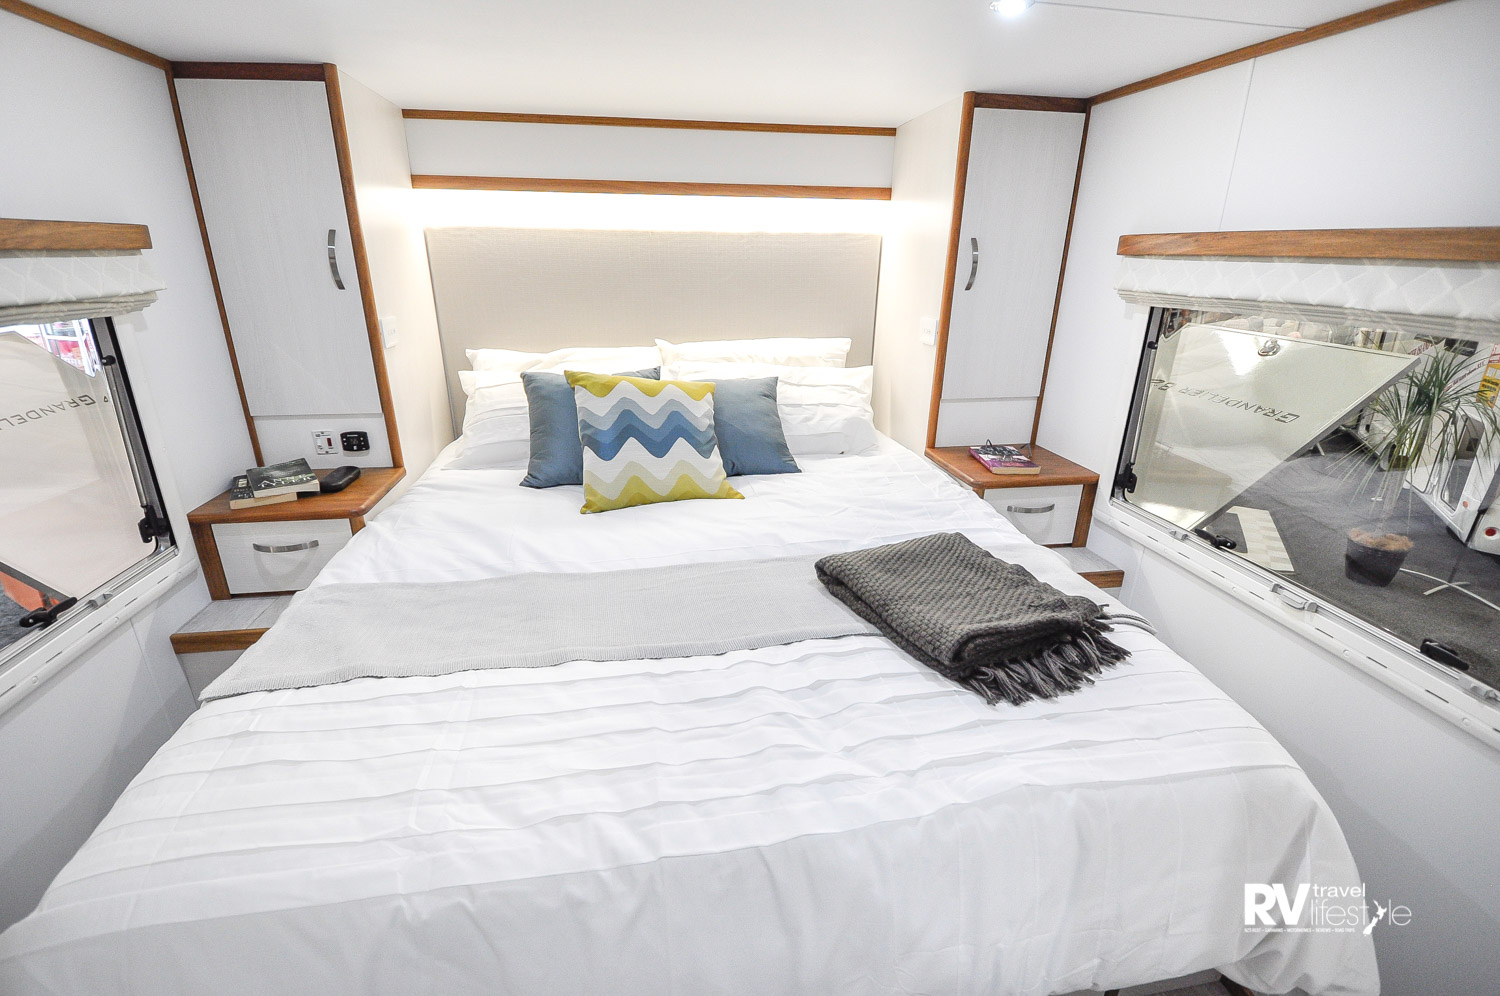 Light, bright, spacious with plenty of storage, drawers, hanging space, power plugs and views to lay back and enjoy with the cuppa your special someone just made for you (hopefully)